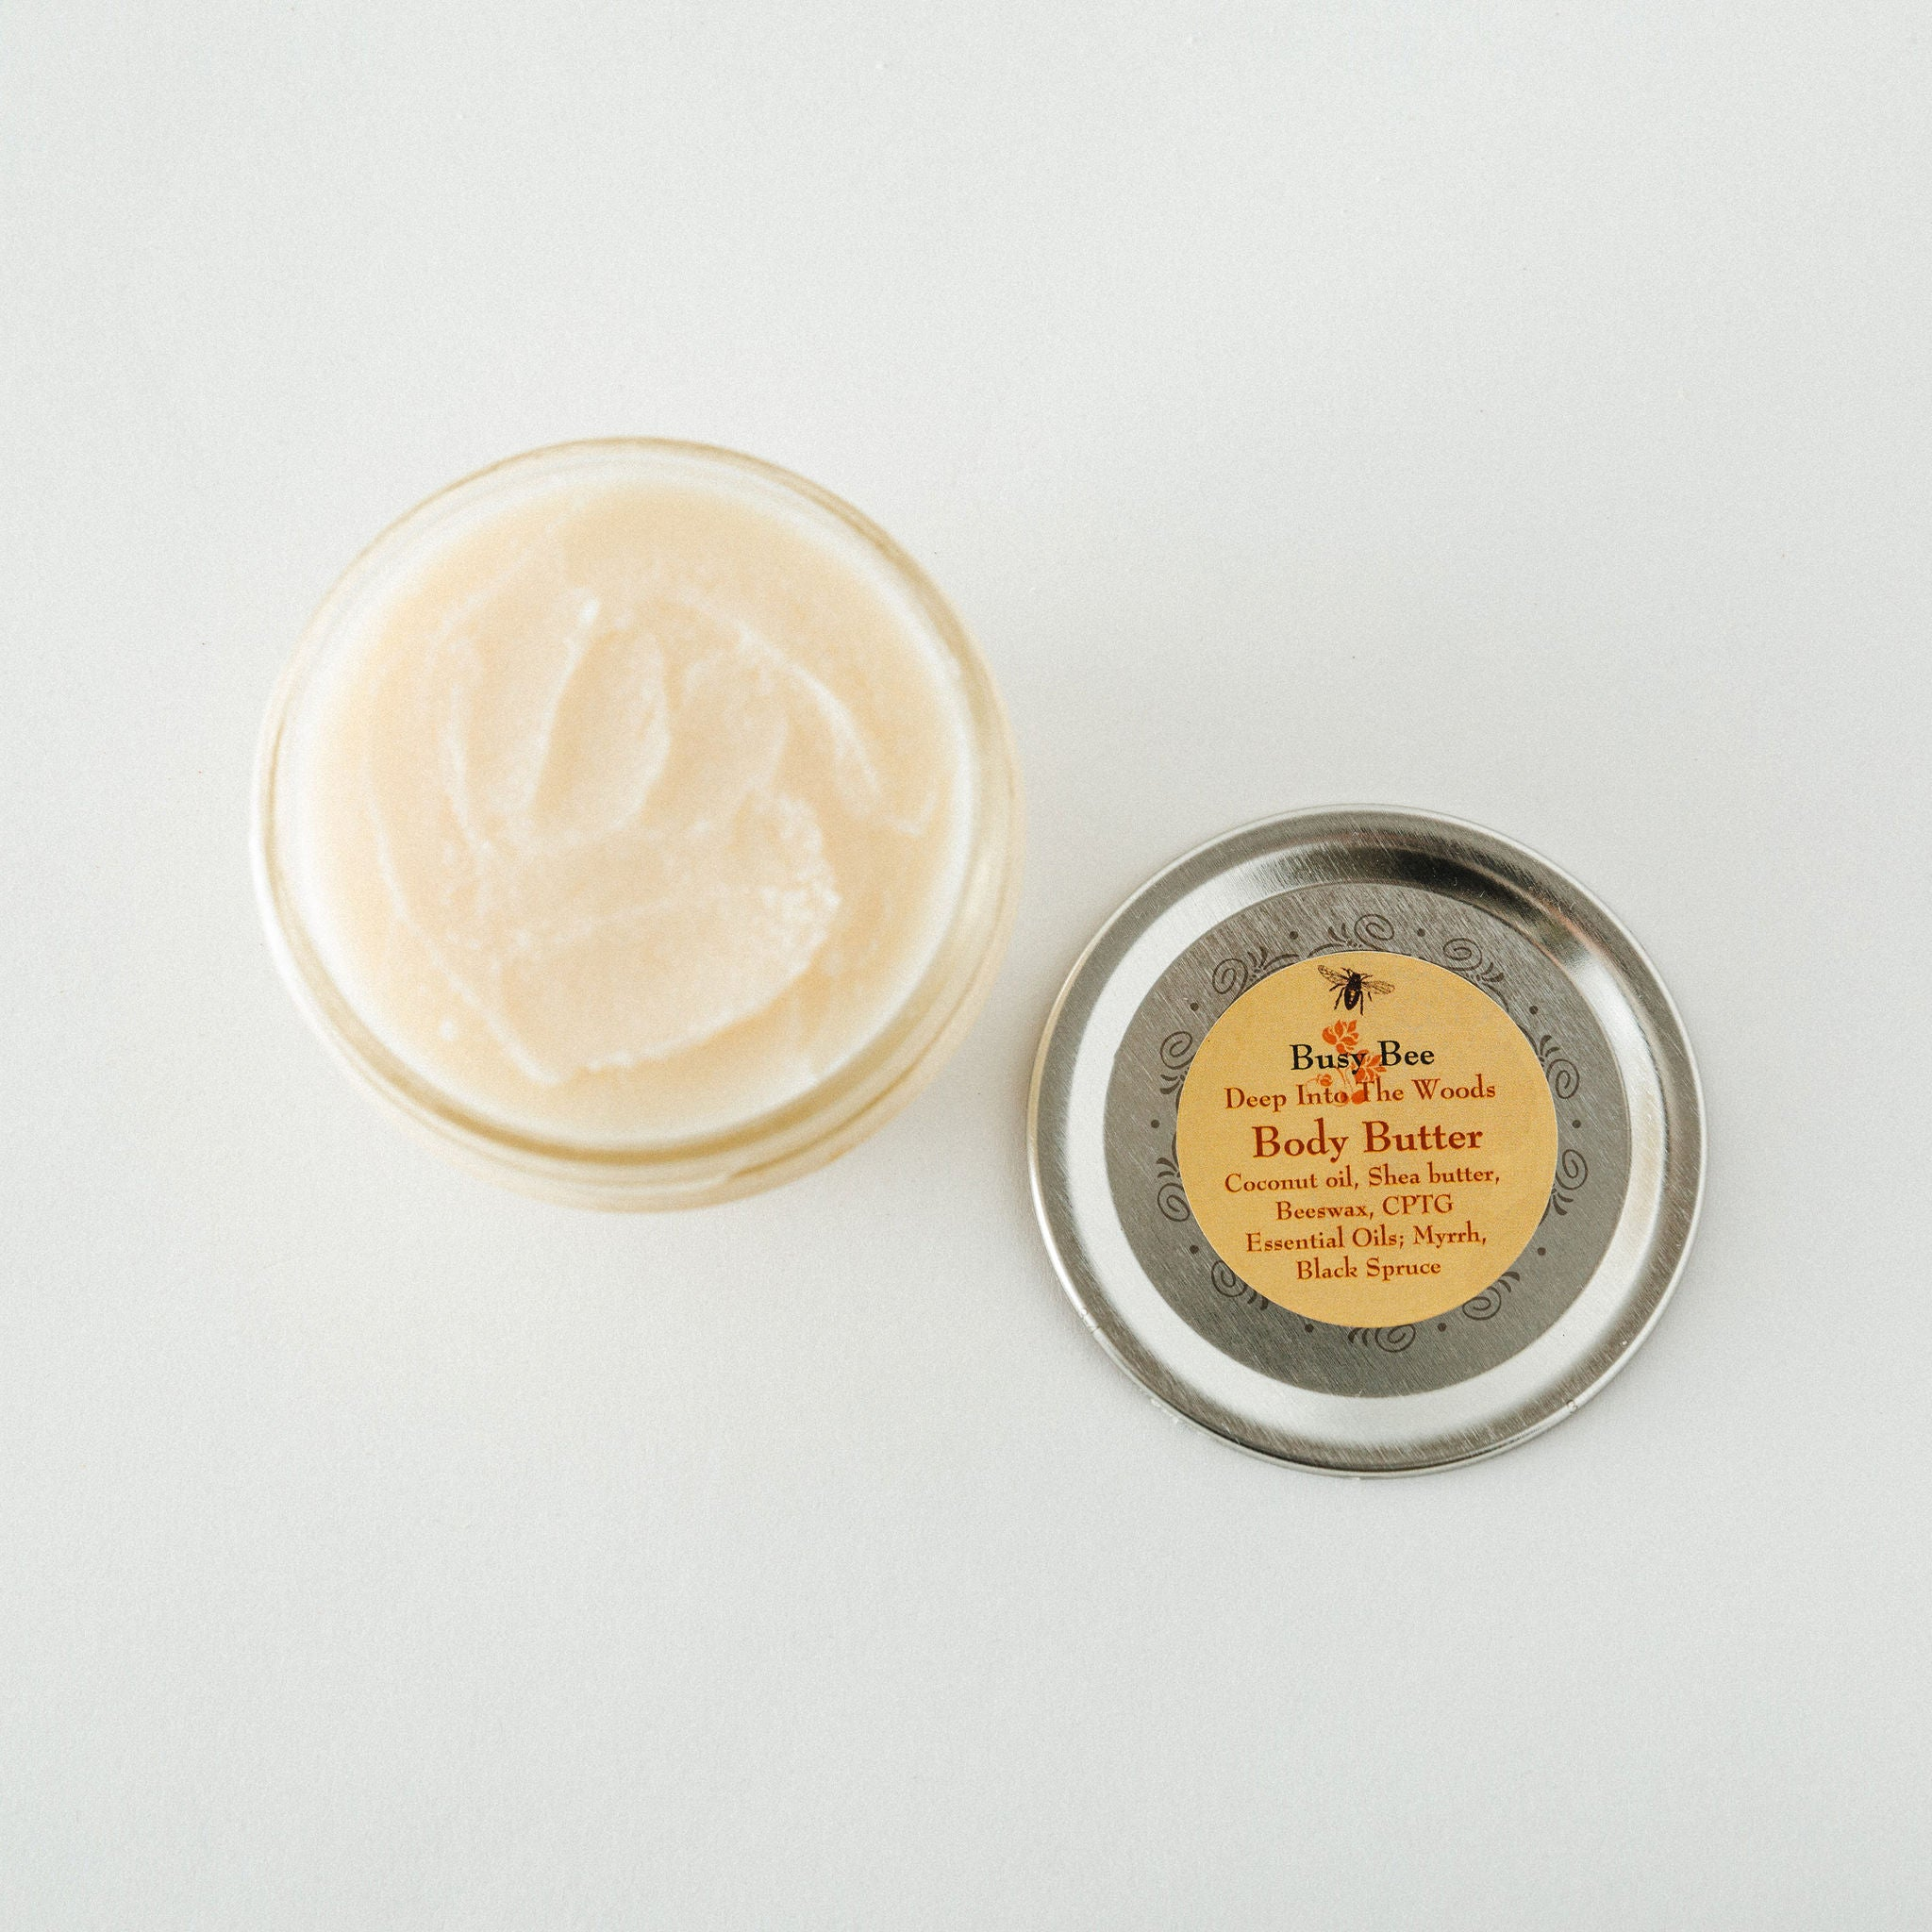 Body Butter - Busy Bee Craftworks